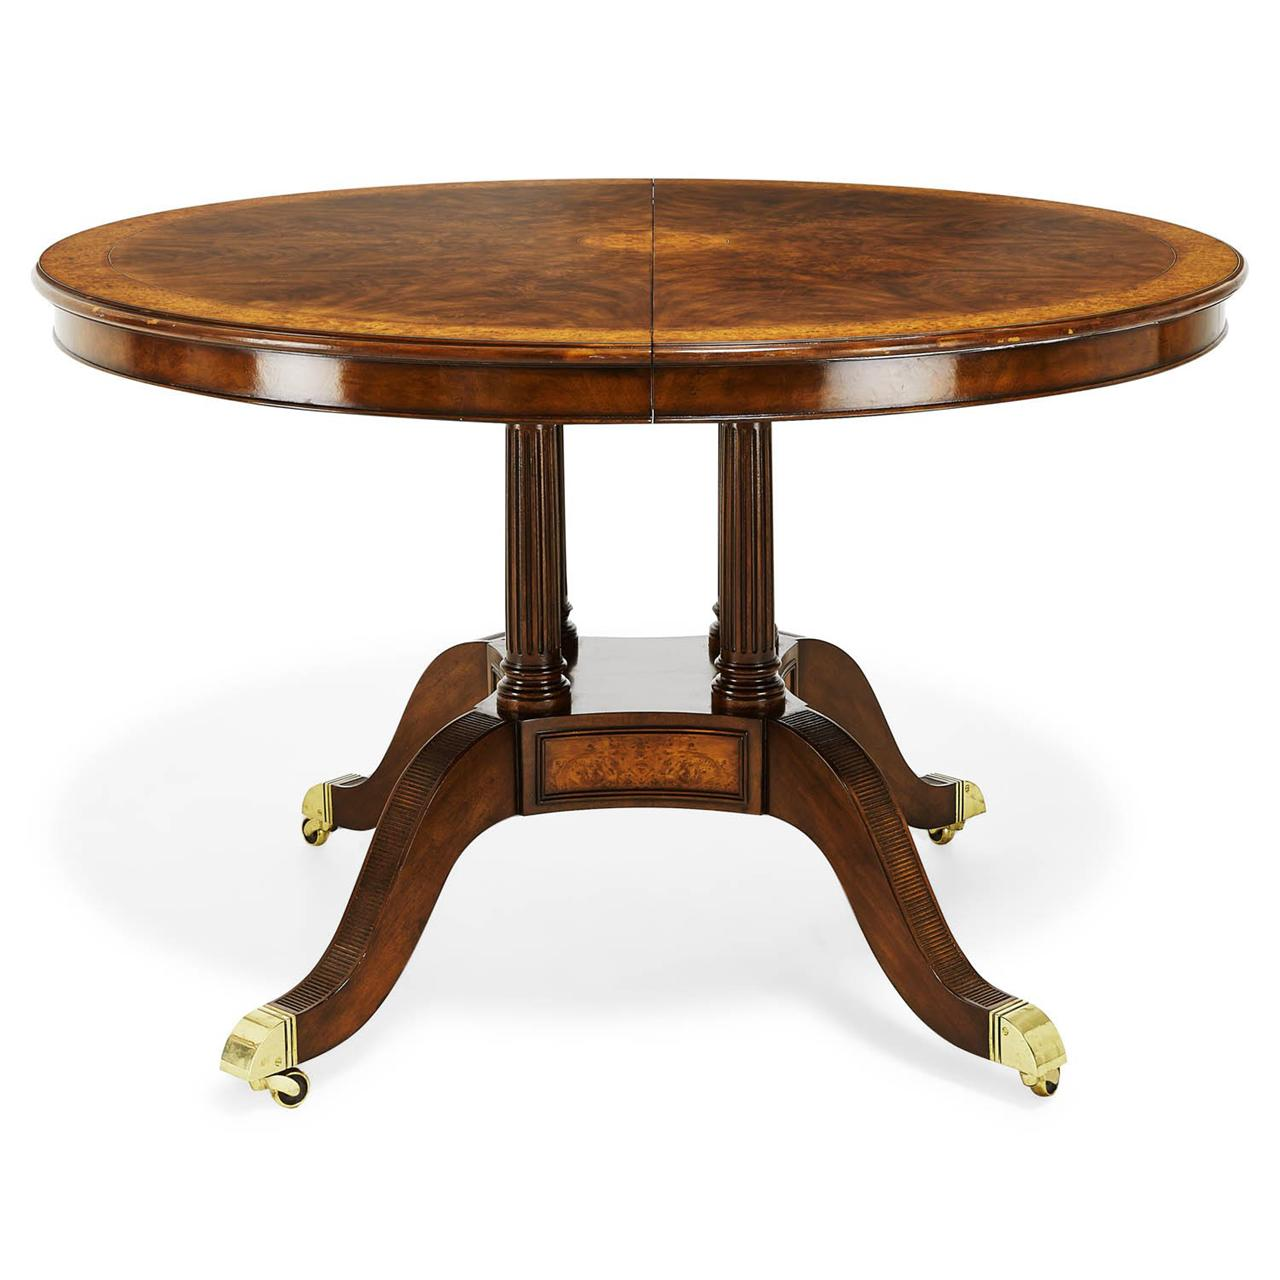 48 inch round to oval walnut and yew banded dining table for Dining room tables 48 round